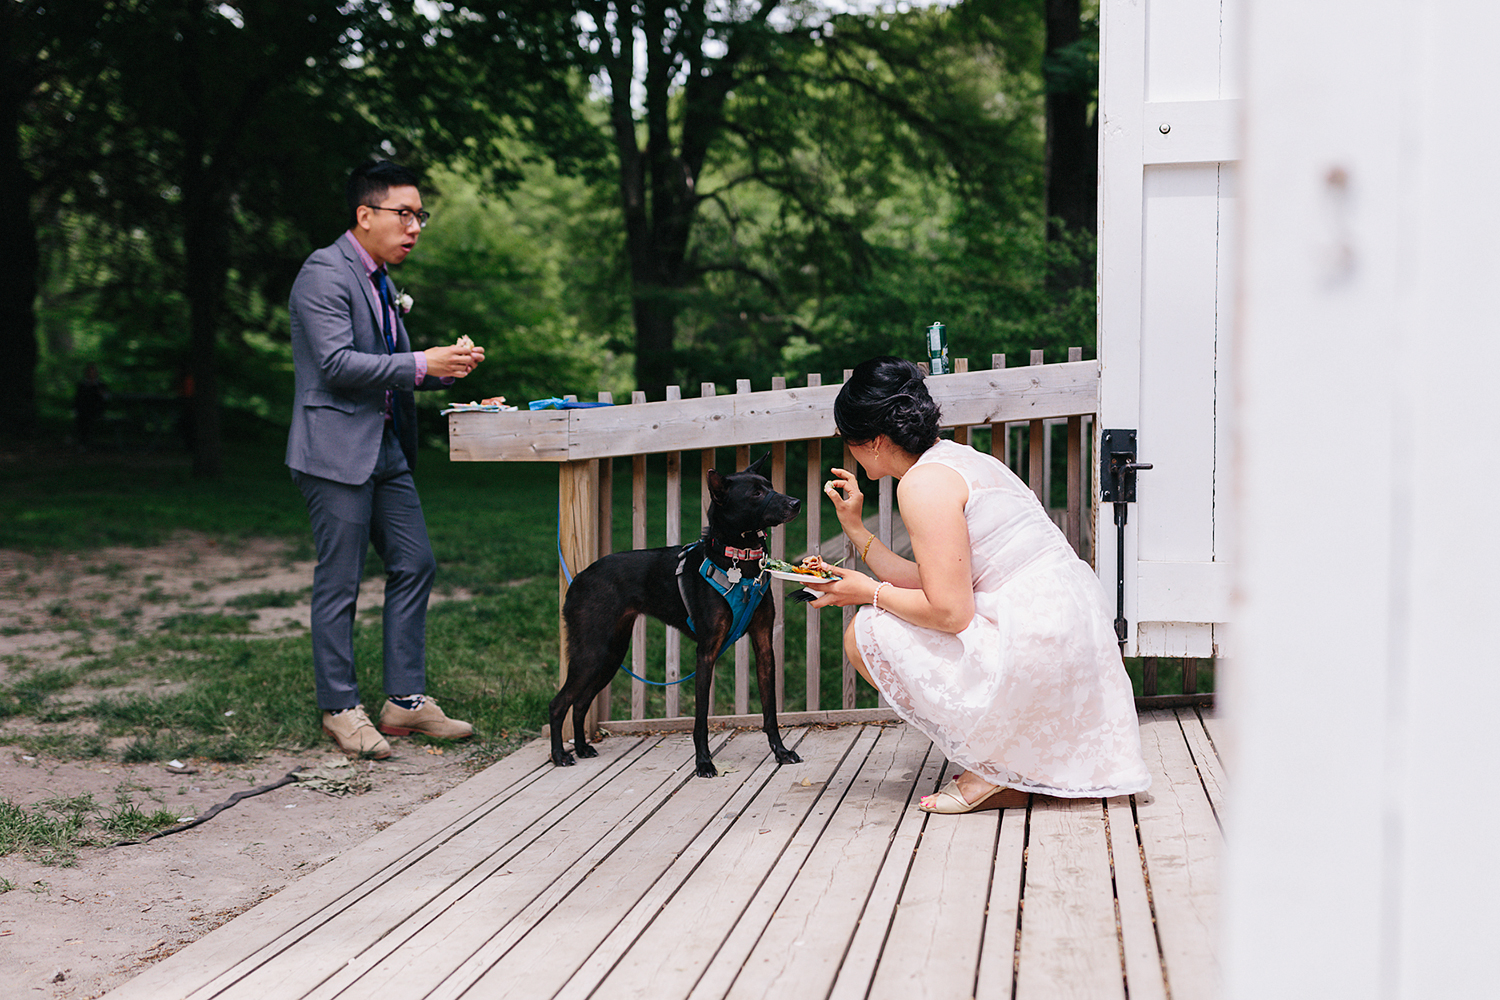 Best-Wedding-Photographers-Toronto_-Urban-City-Wedding-Photography-Downtown-Toronto-Photographer_Vintage-Bride-and-Groom-Details_The-Chase-Wedding-Venue_Candid-Photojournalistic-Documentary-Epic-First-Look-Bride-and-Groom.jpg